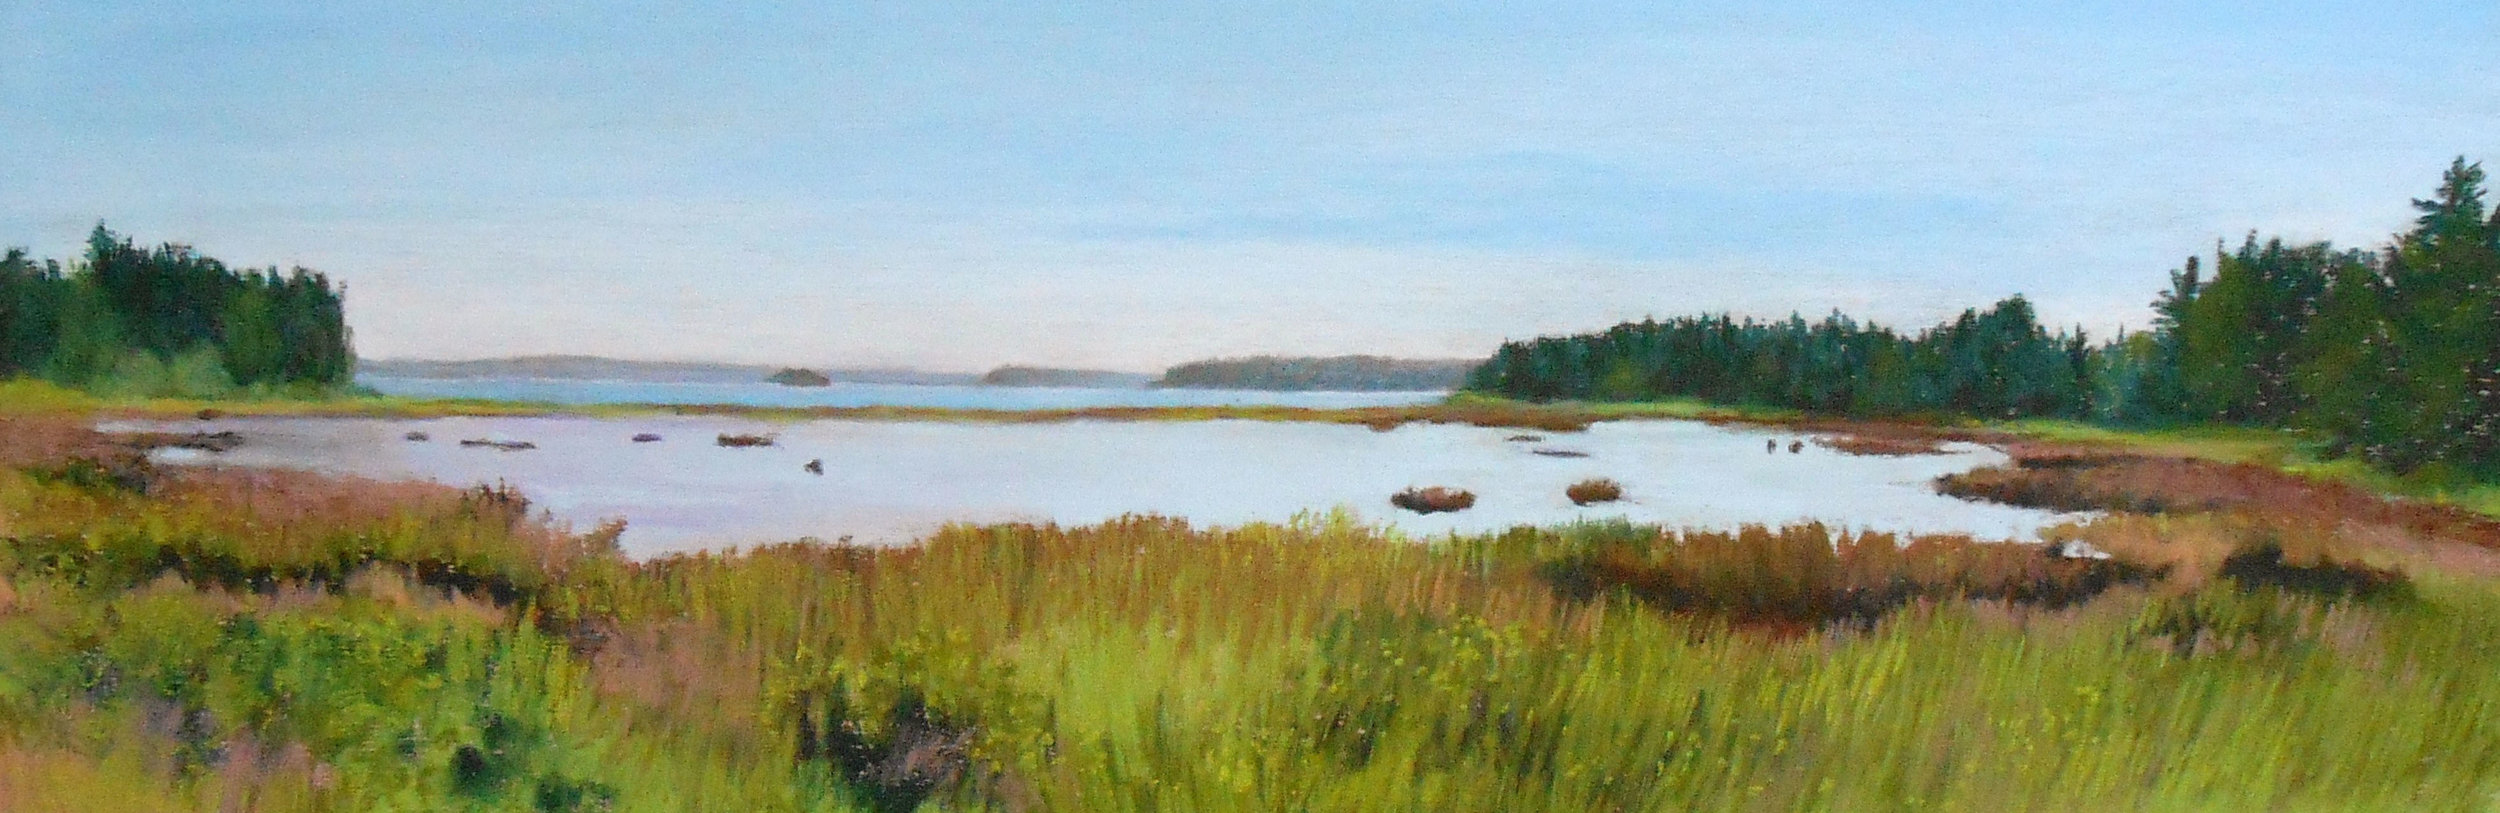 Salt Marsh on Deer Isle, Maine